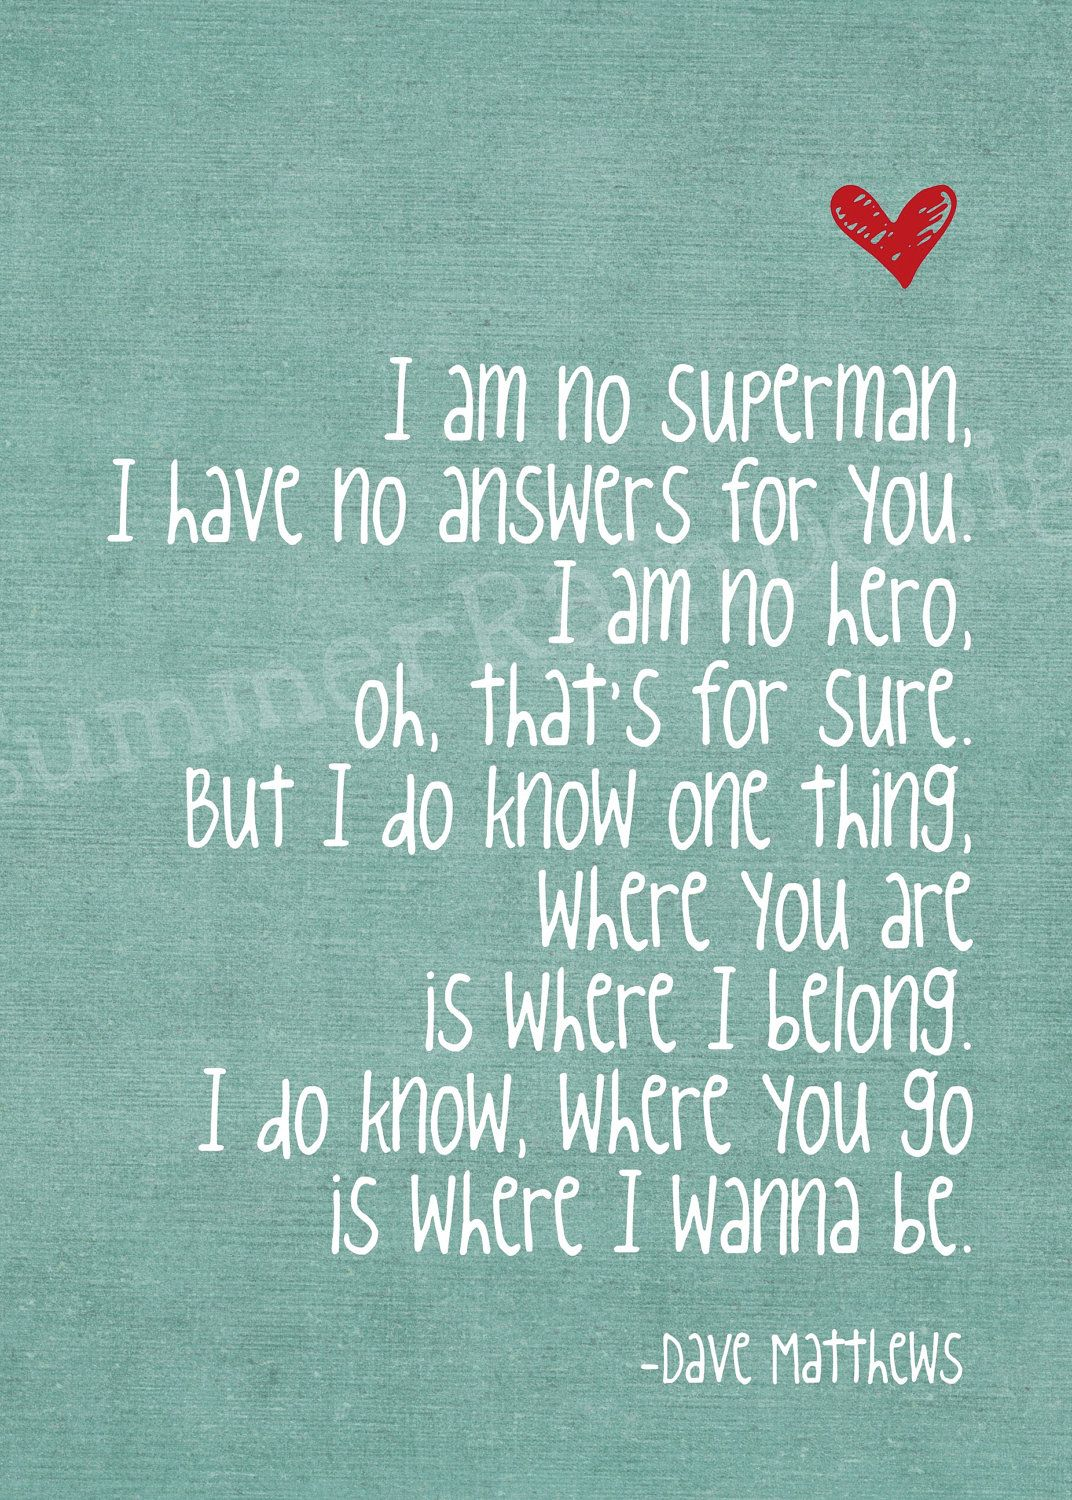 I am no superman. But I do know one thing. Where you are